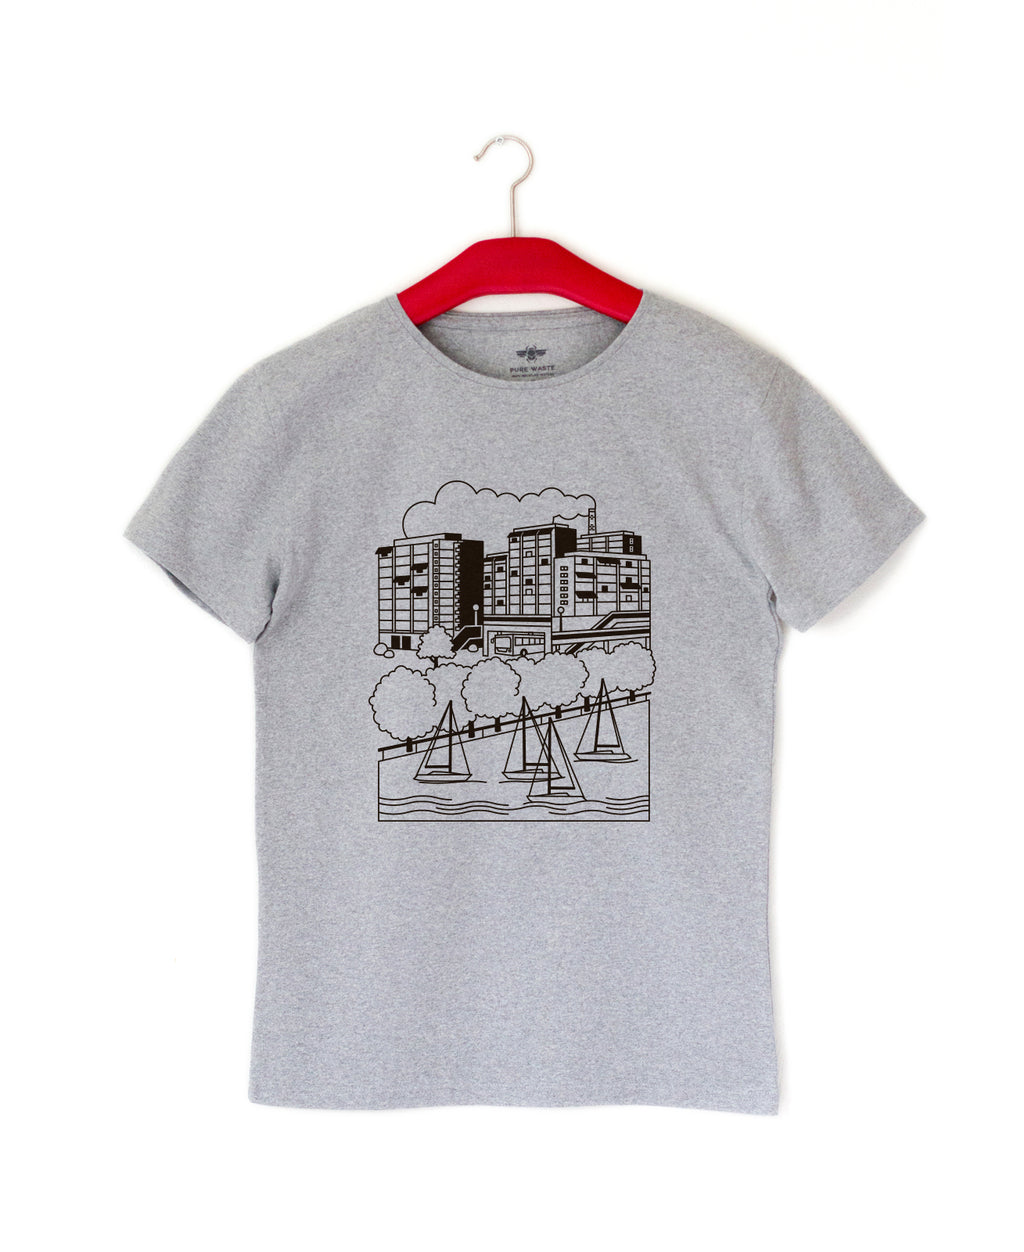 Merihaka t-shirt, adults